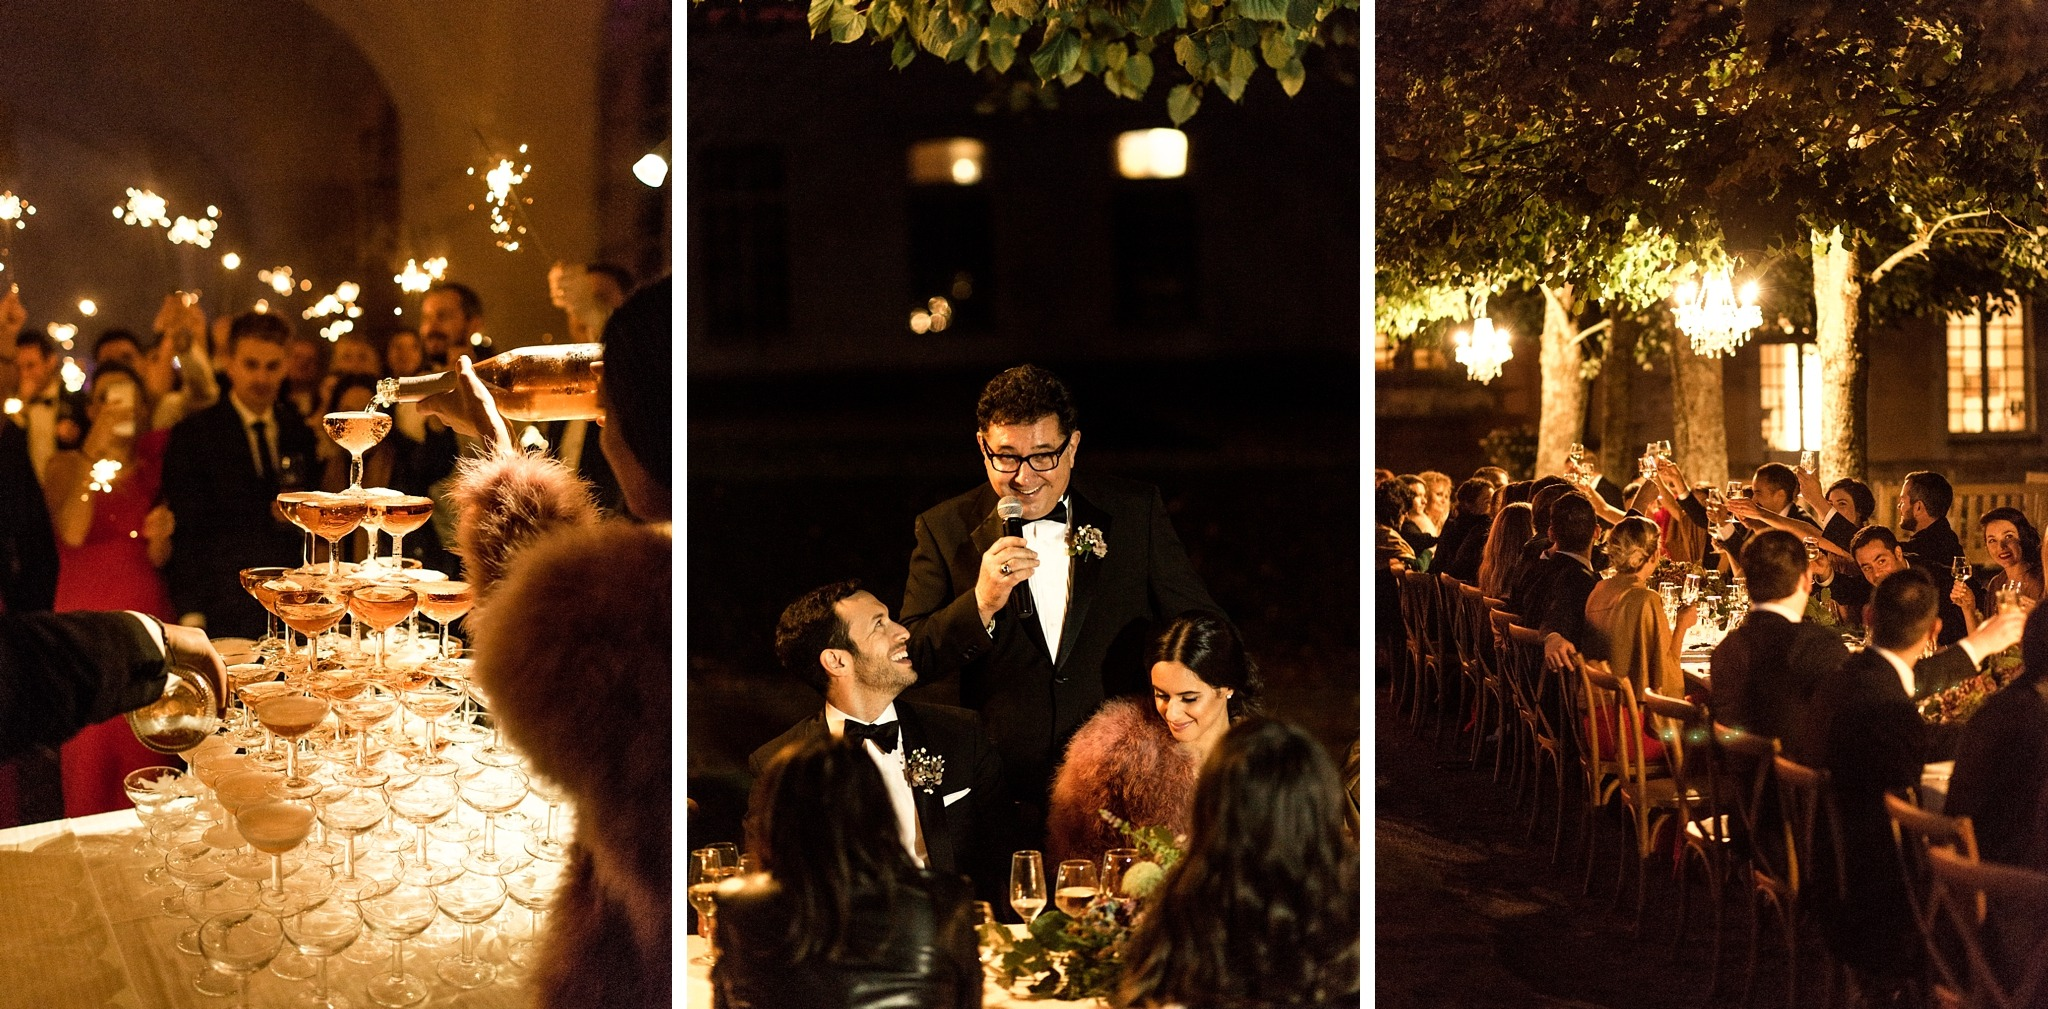 chateau-wedding-france-chanel-eric-as-seen-on-vogue-with-sarah-falugo-photographer_0198